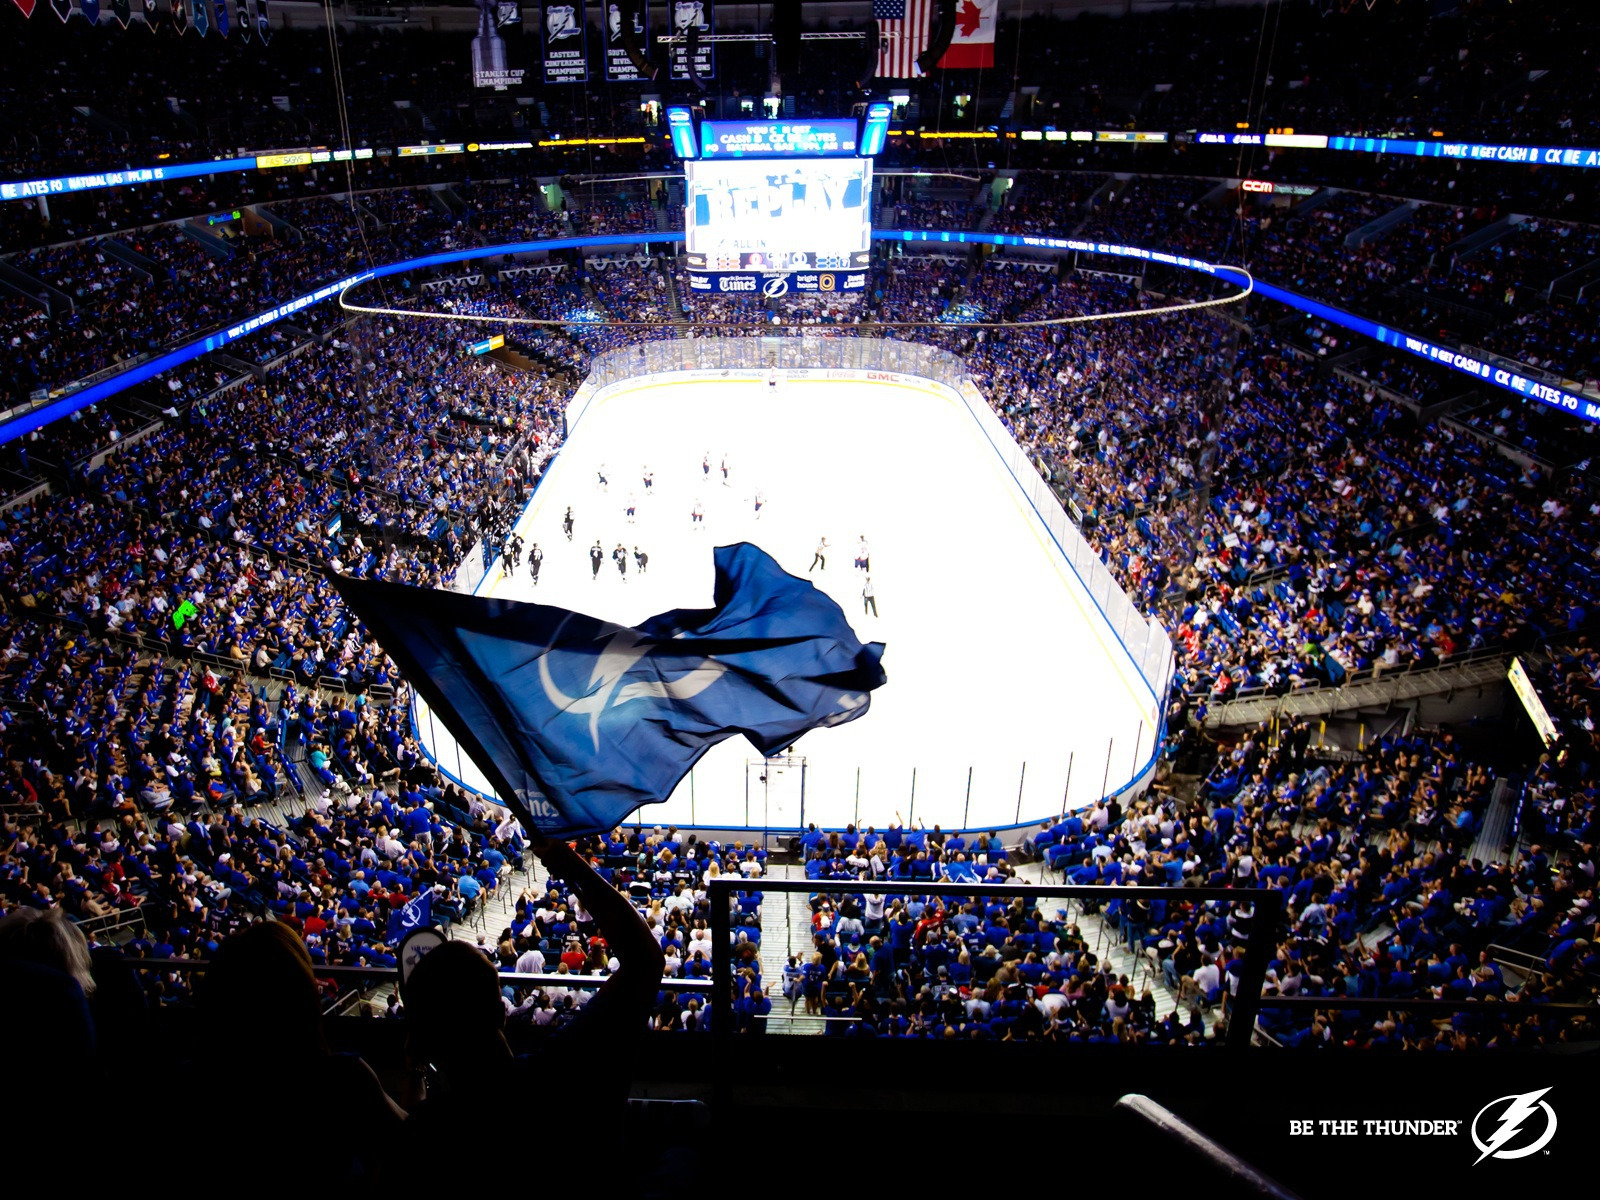 Tampa Bay Lightning Images Be The Thunder HD Wallpaper And Background Photos